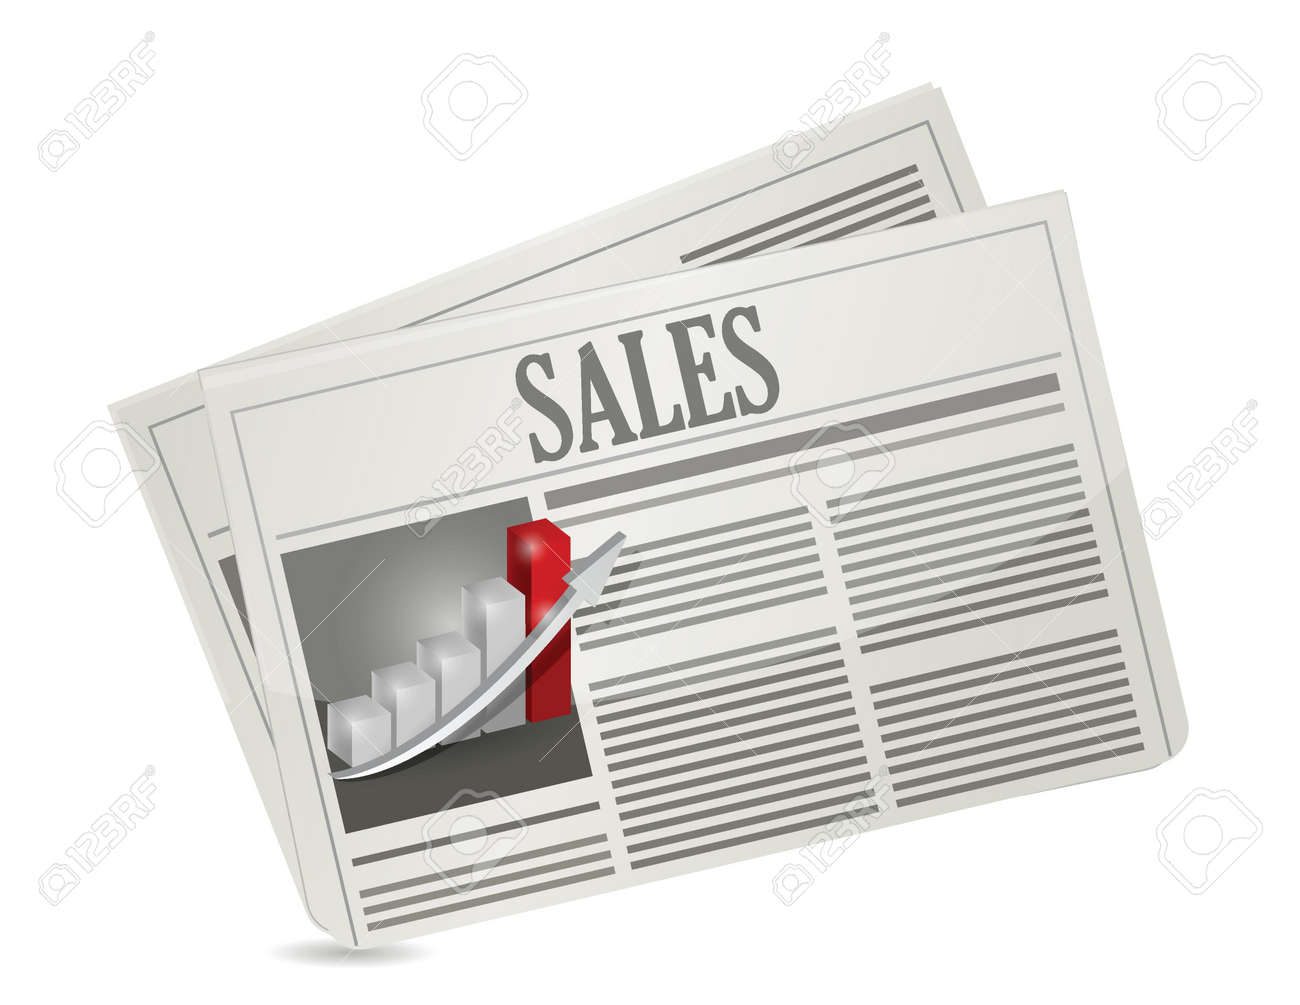 business sales newspaper illustration design over a white background Stock Vector - 21942384